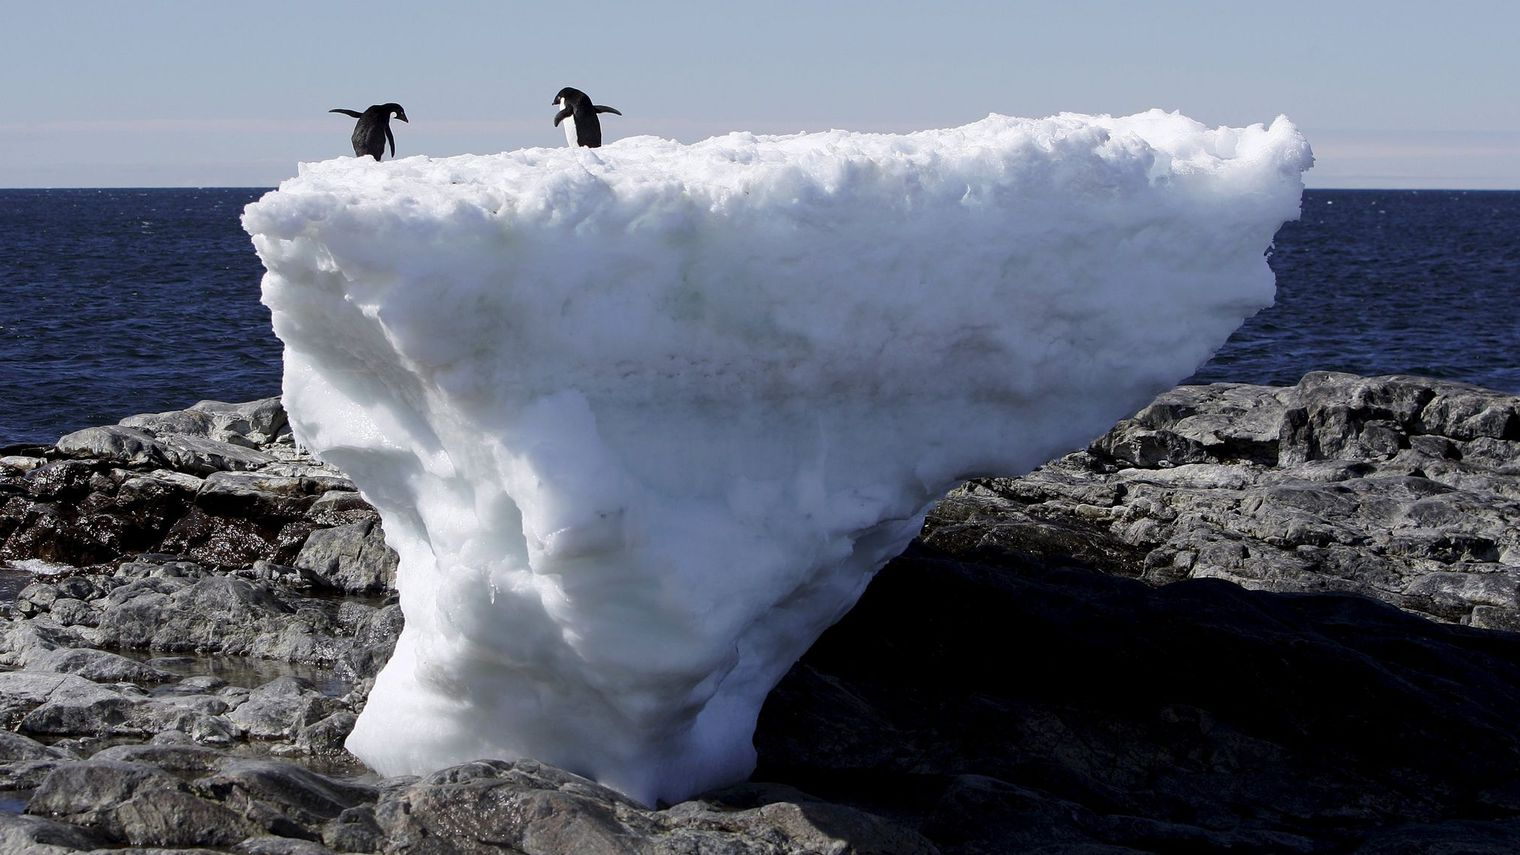 two_penguins_standing_on_a_block_of_melting_ice_in_antarctica